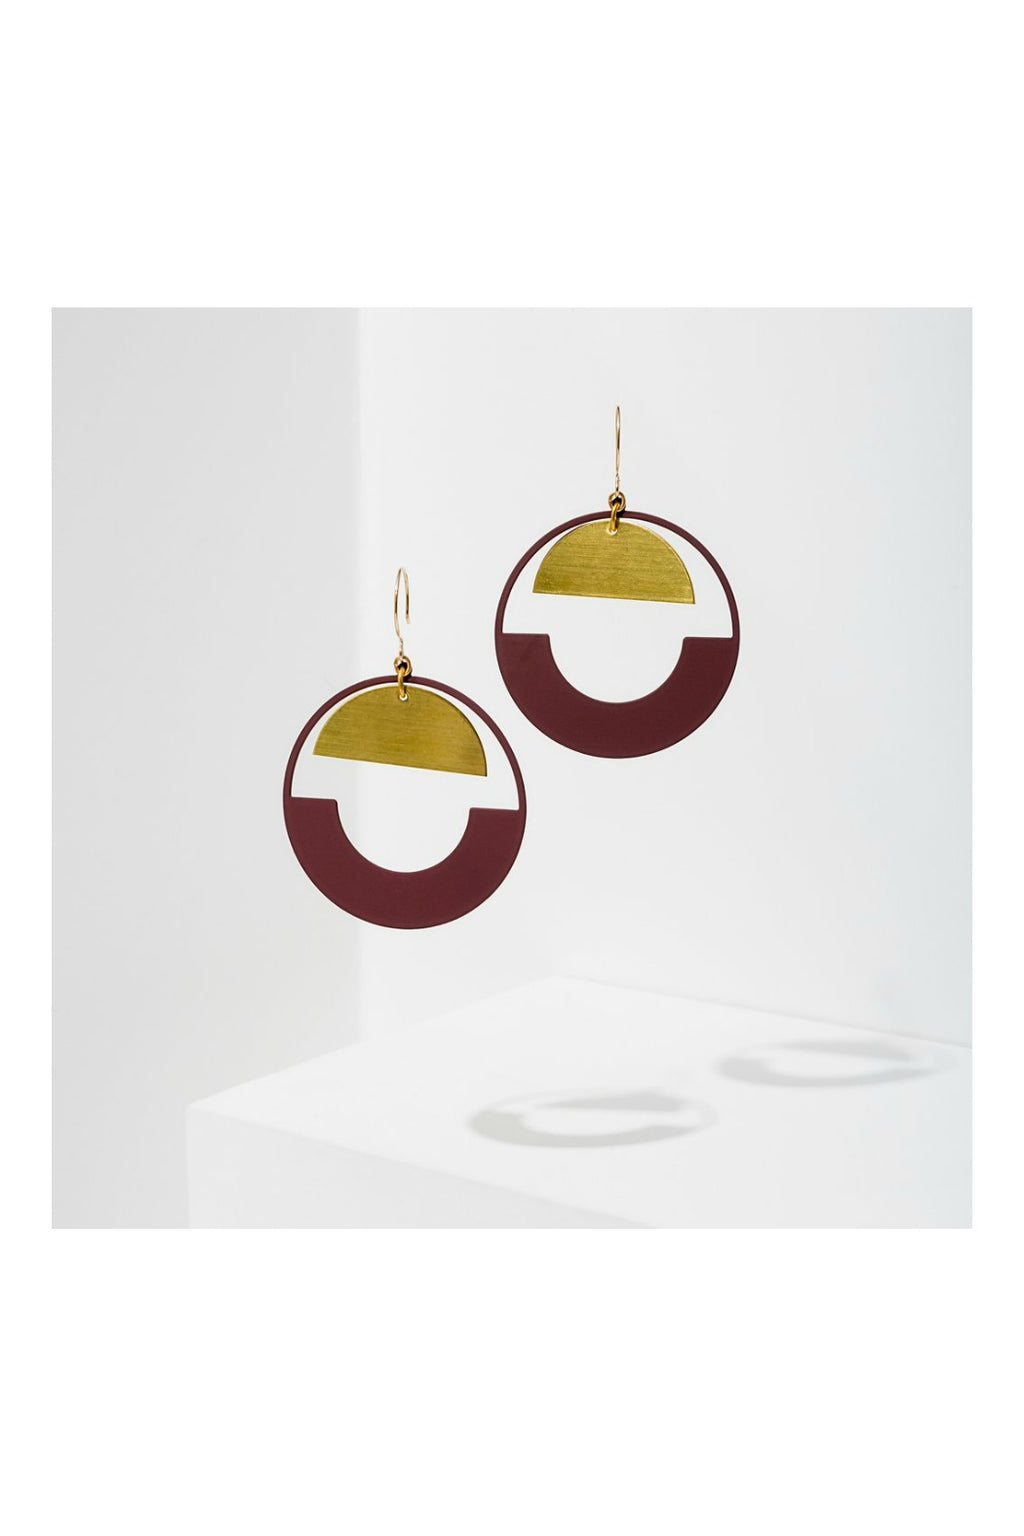 Larissa Loden Baltic Hoop Earrings - Maroon